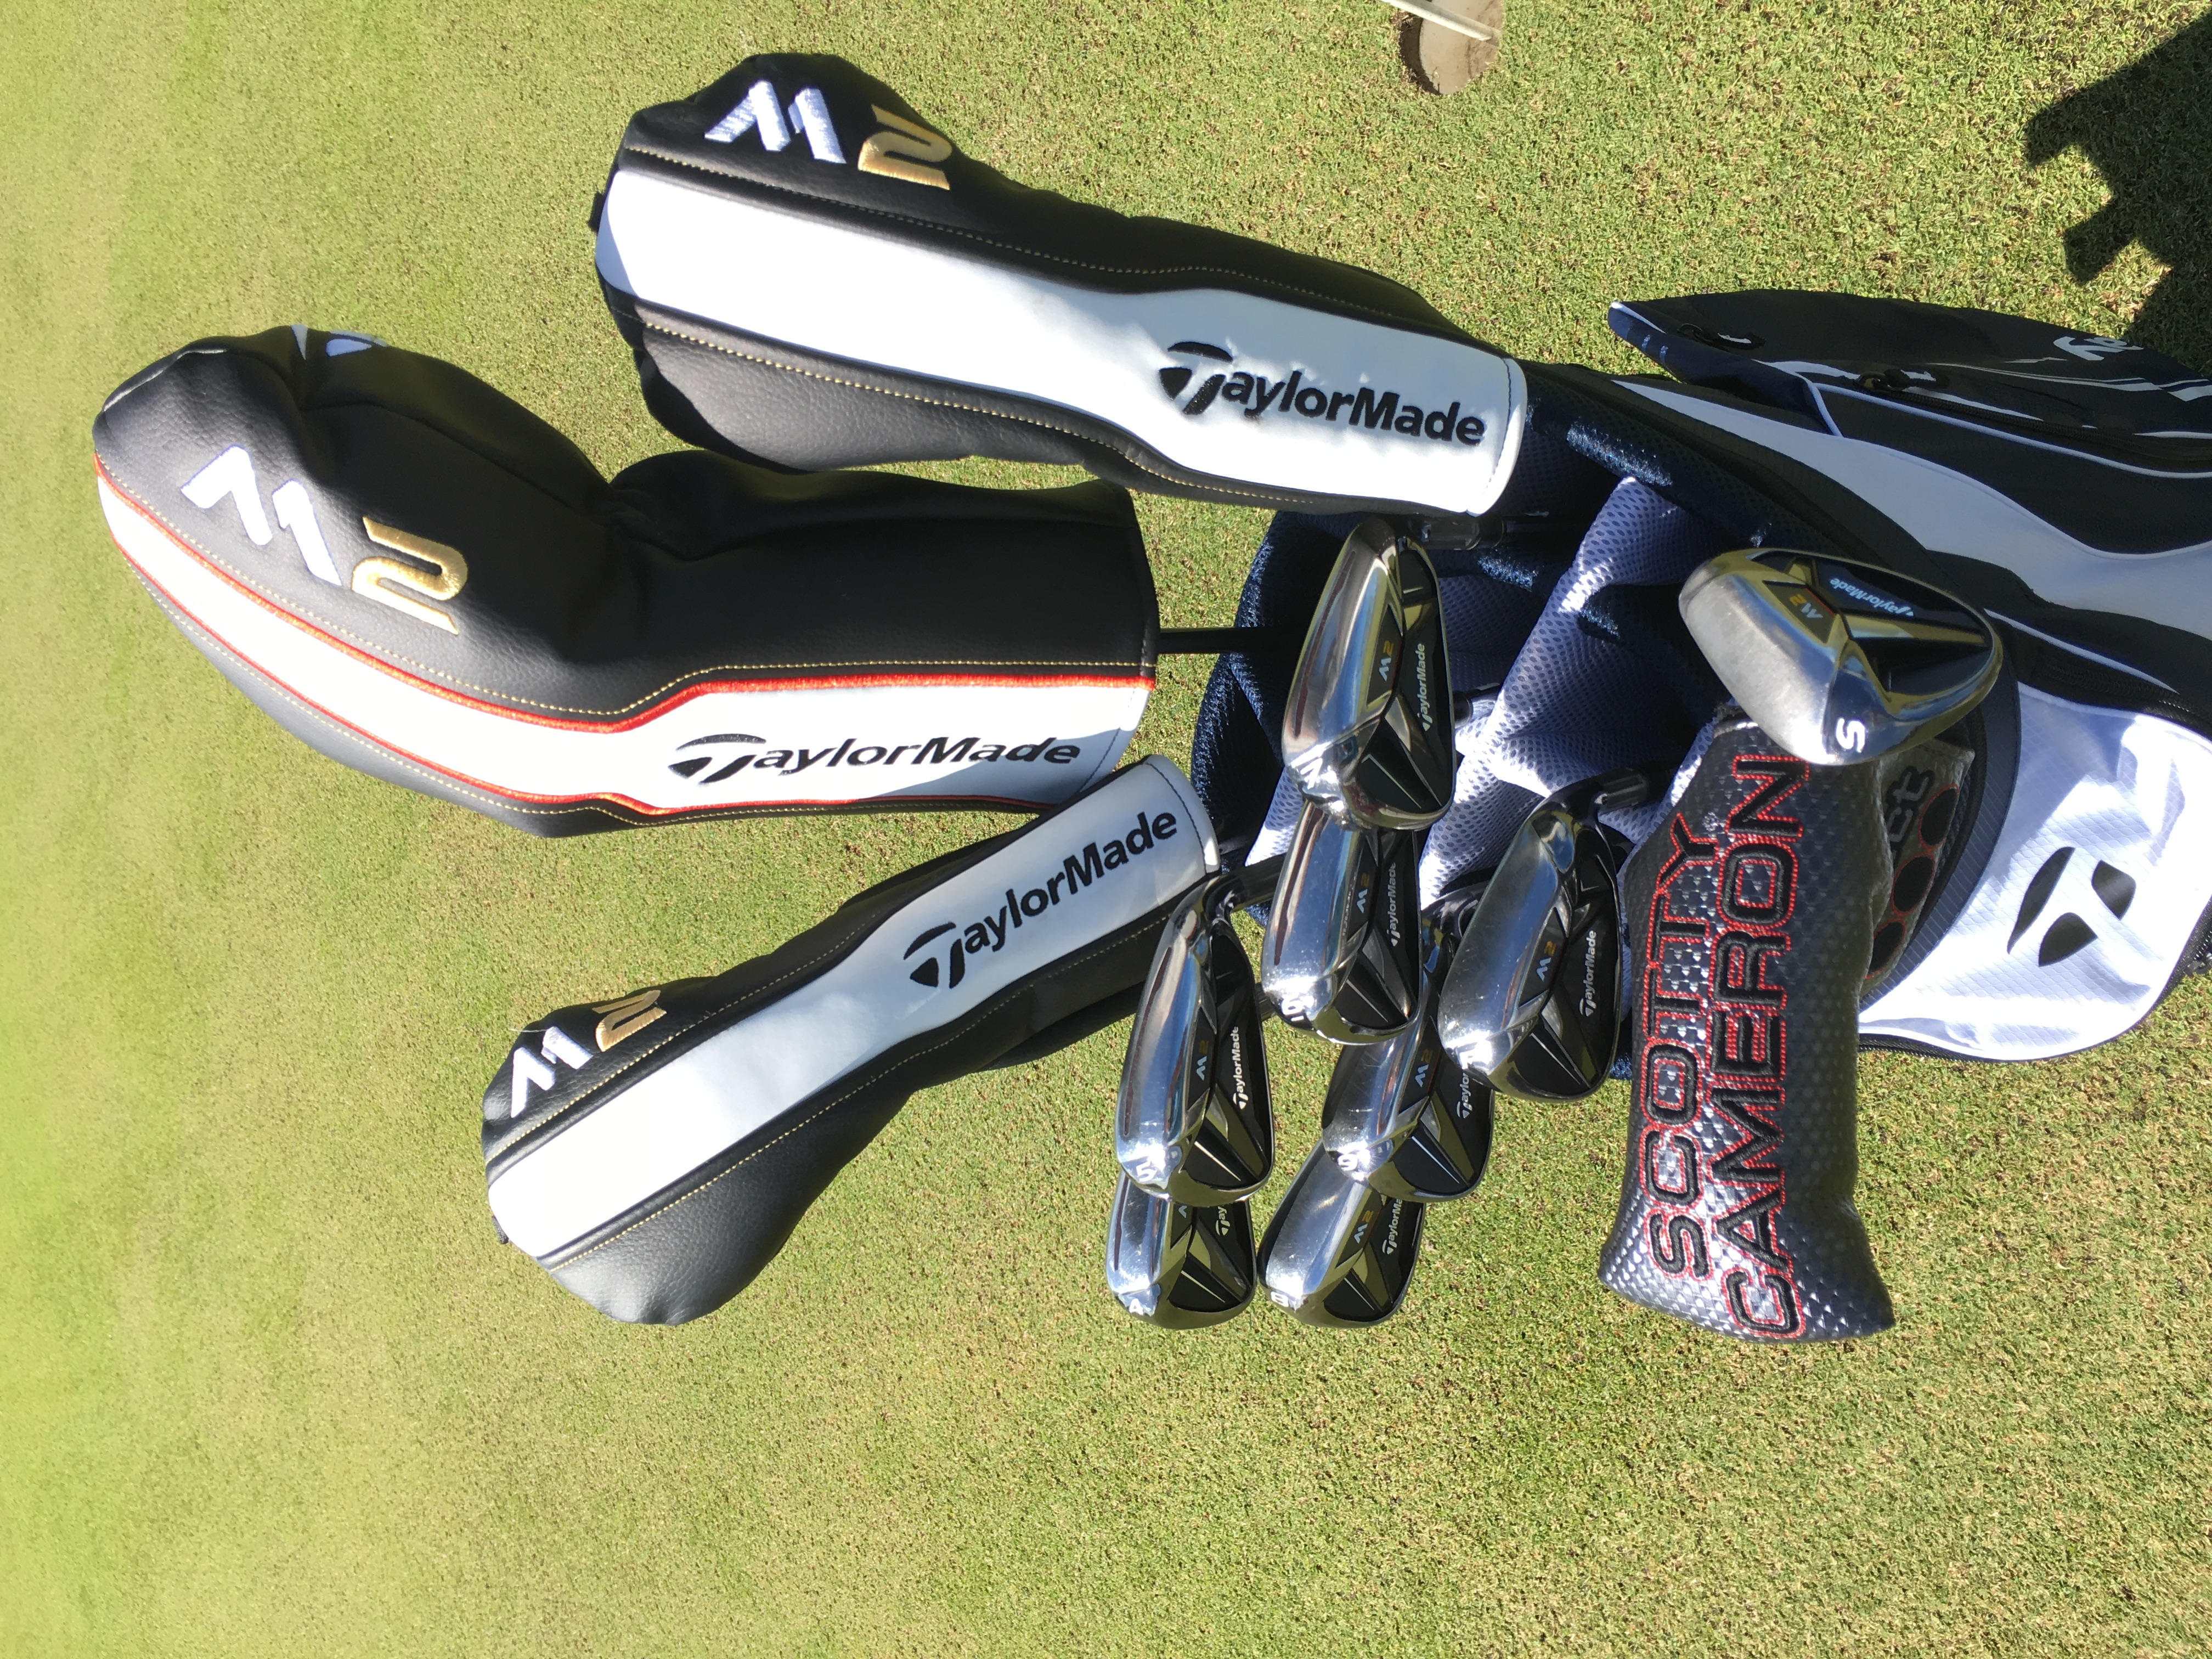 Deluxe range TaylorMade m2 clubs